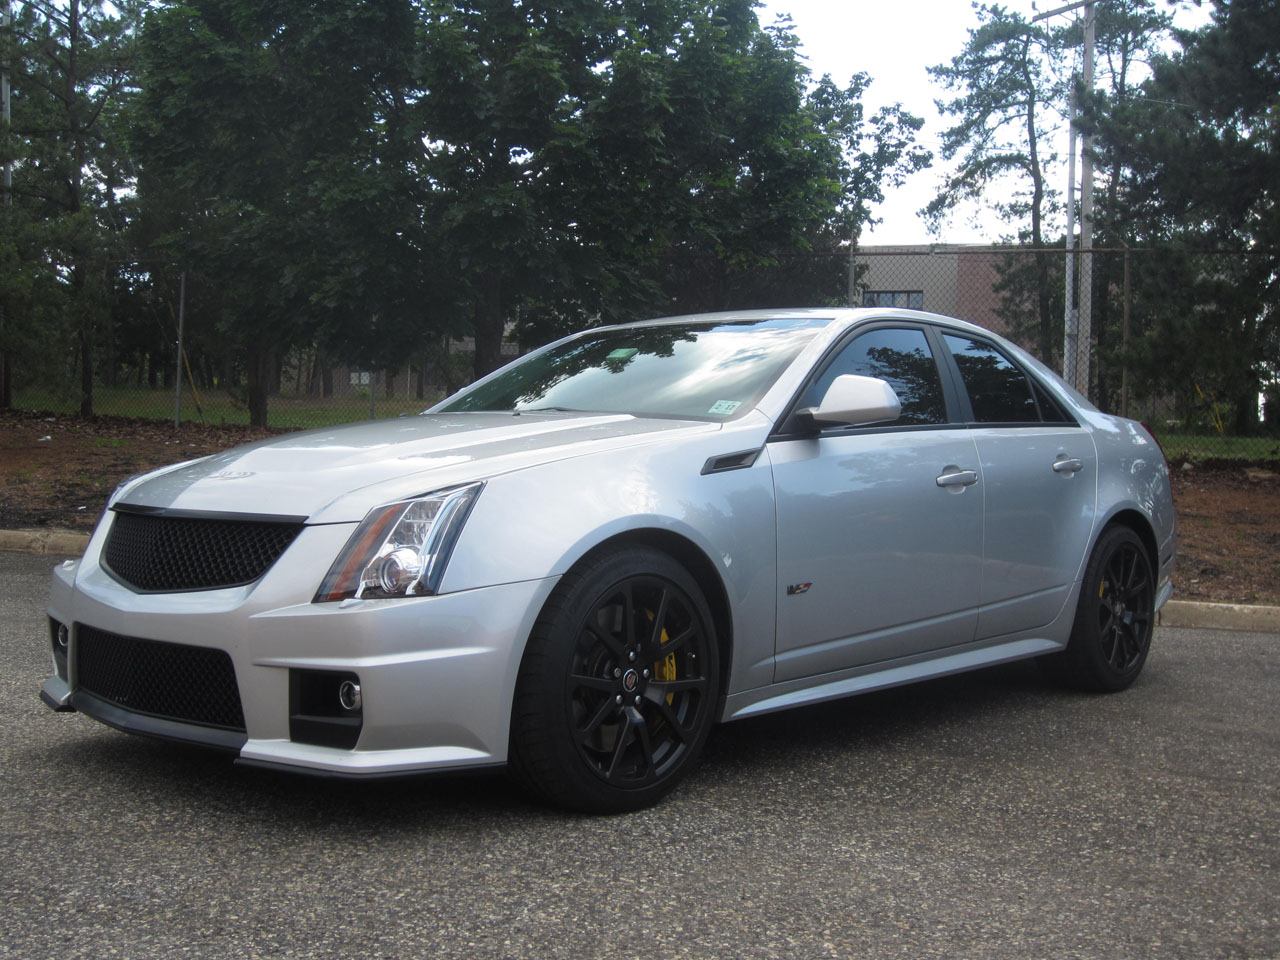 Cadillac Cts V Wagon For Sale >> 2012 Silver Cadillac CTS-V Pictures, Mods, Upgrades ...